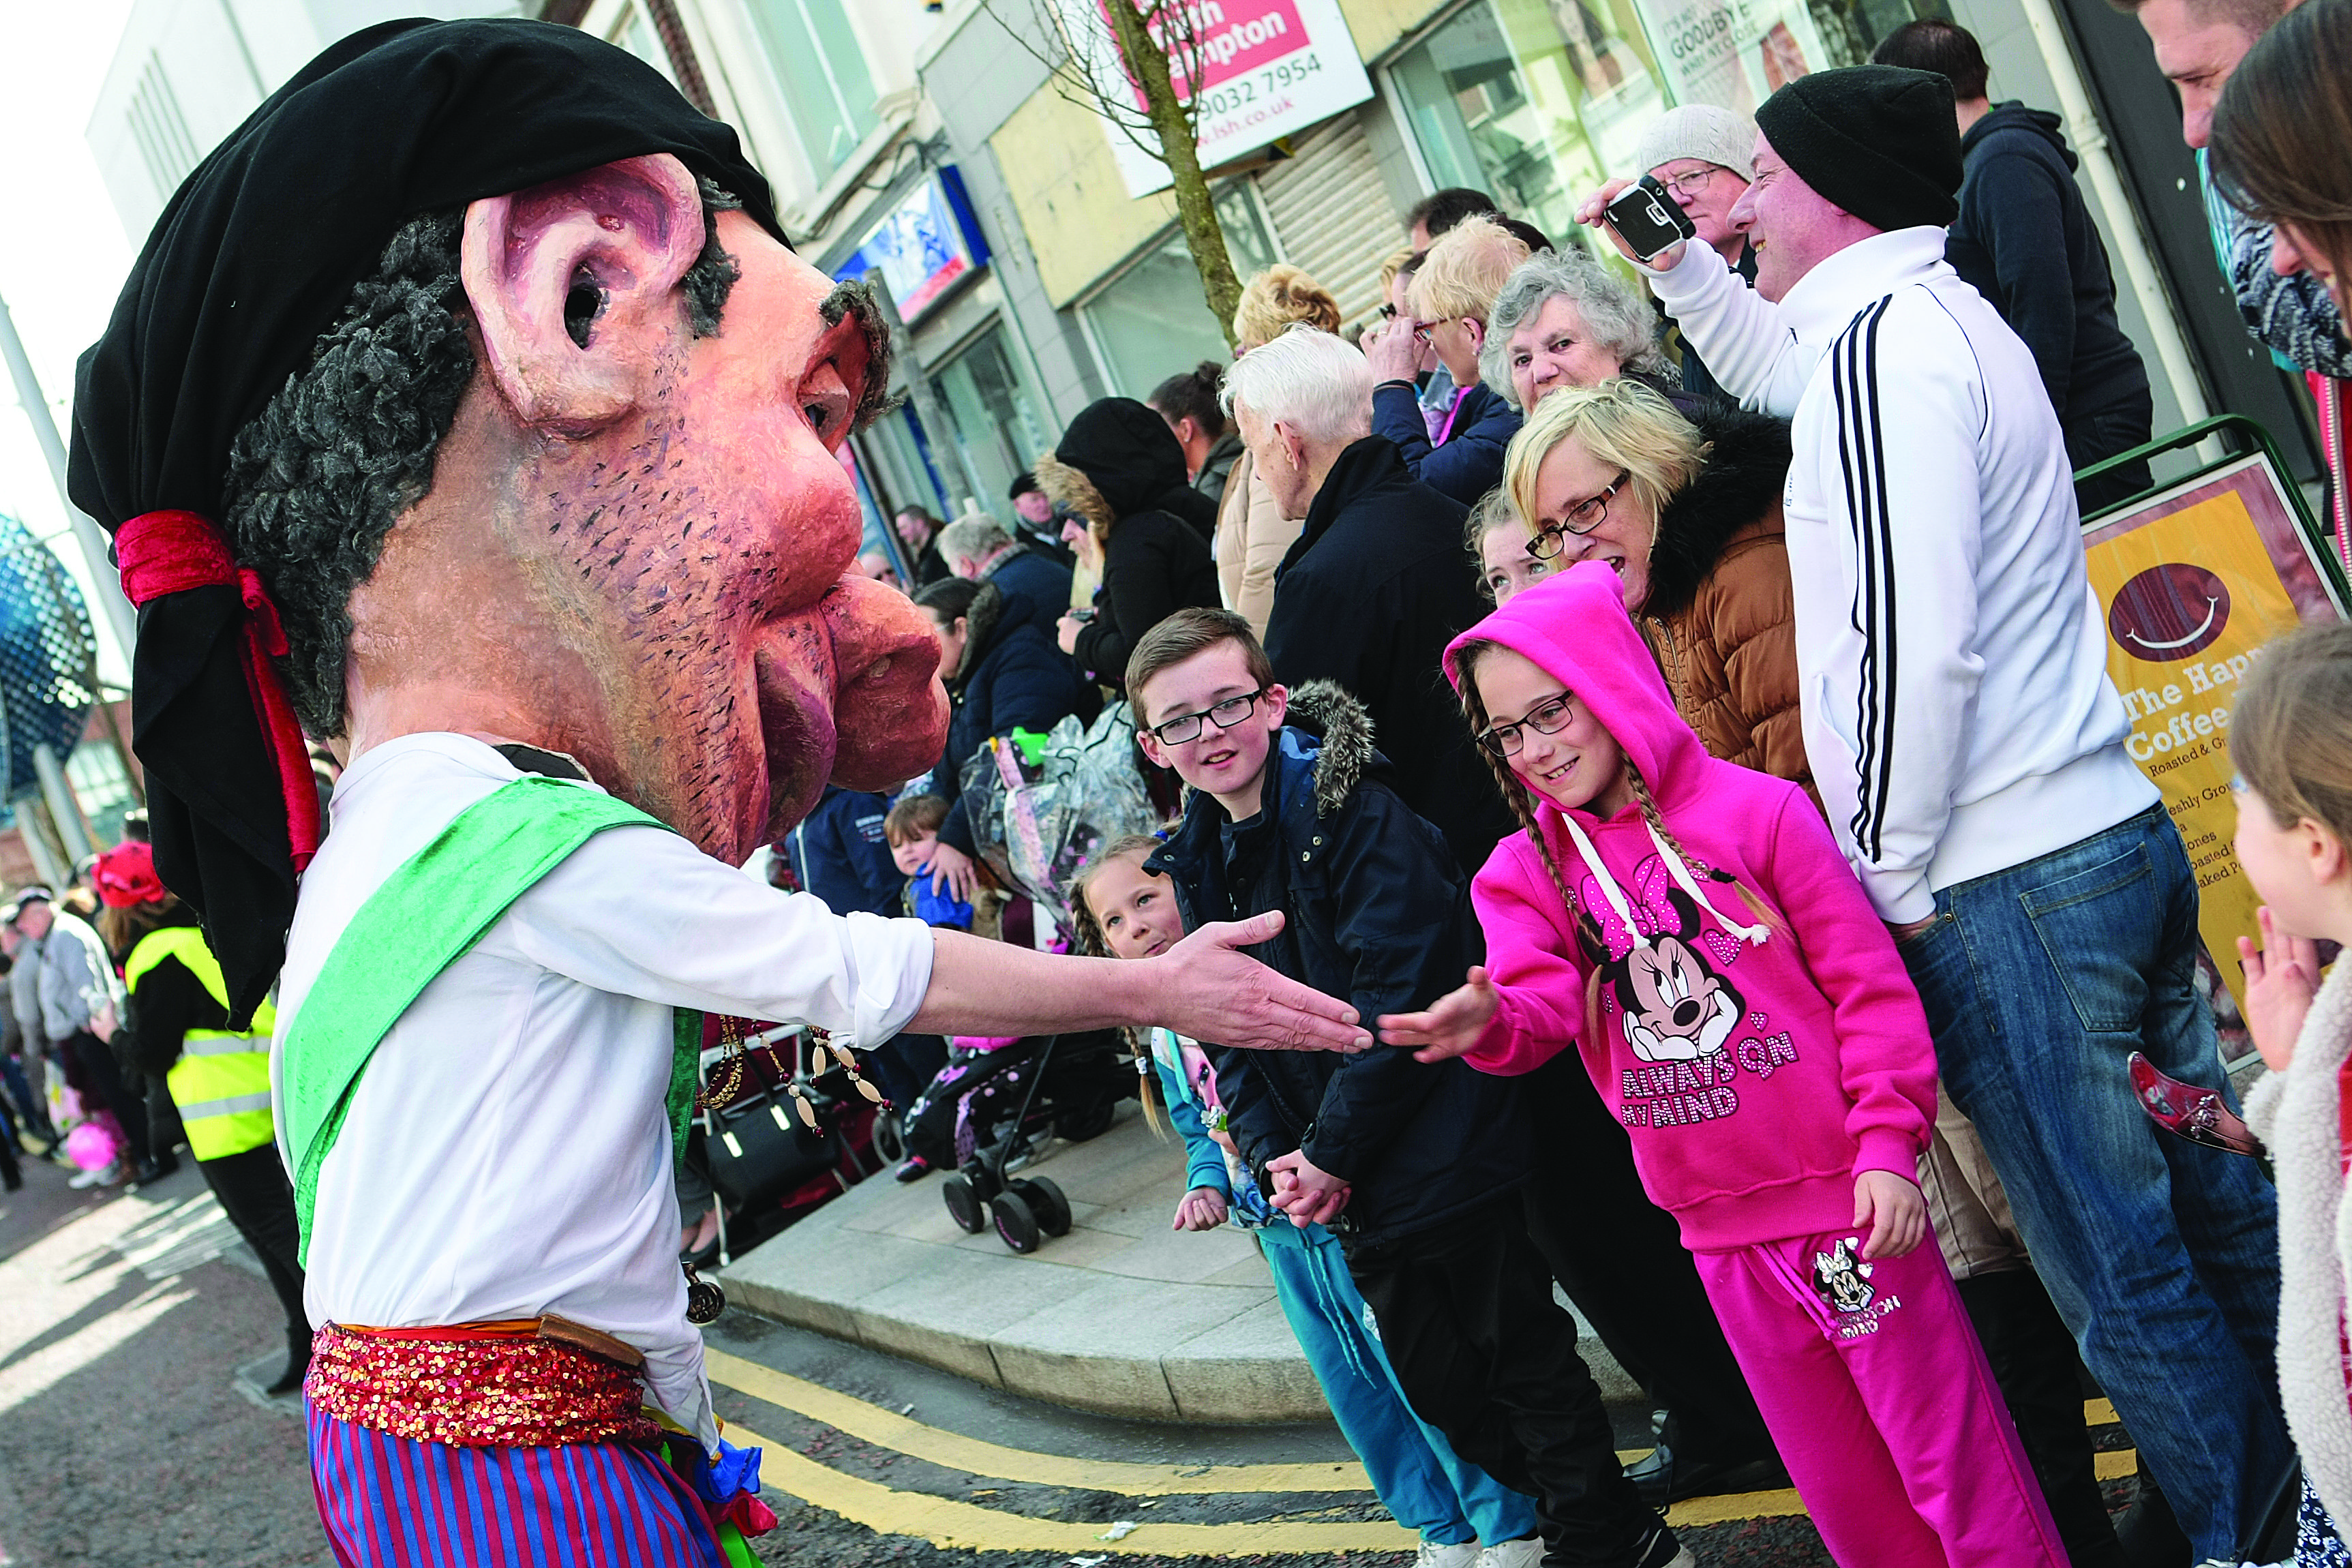 Council's reasons for axing Easter Parade don't hold water, says leading arts company